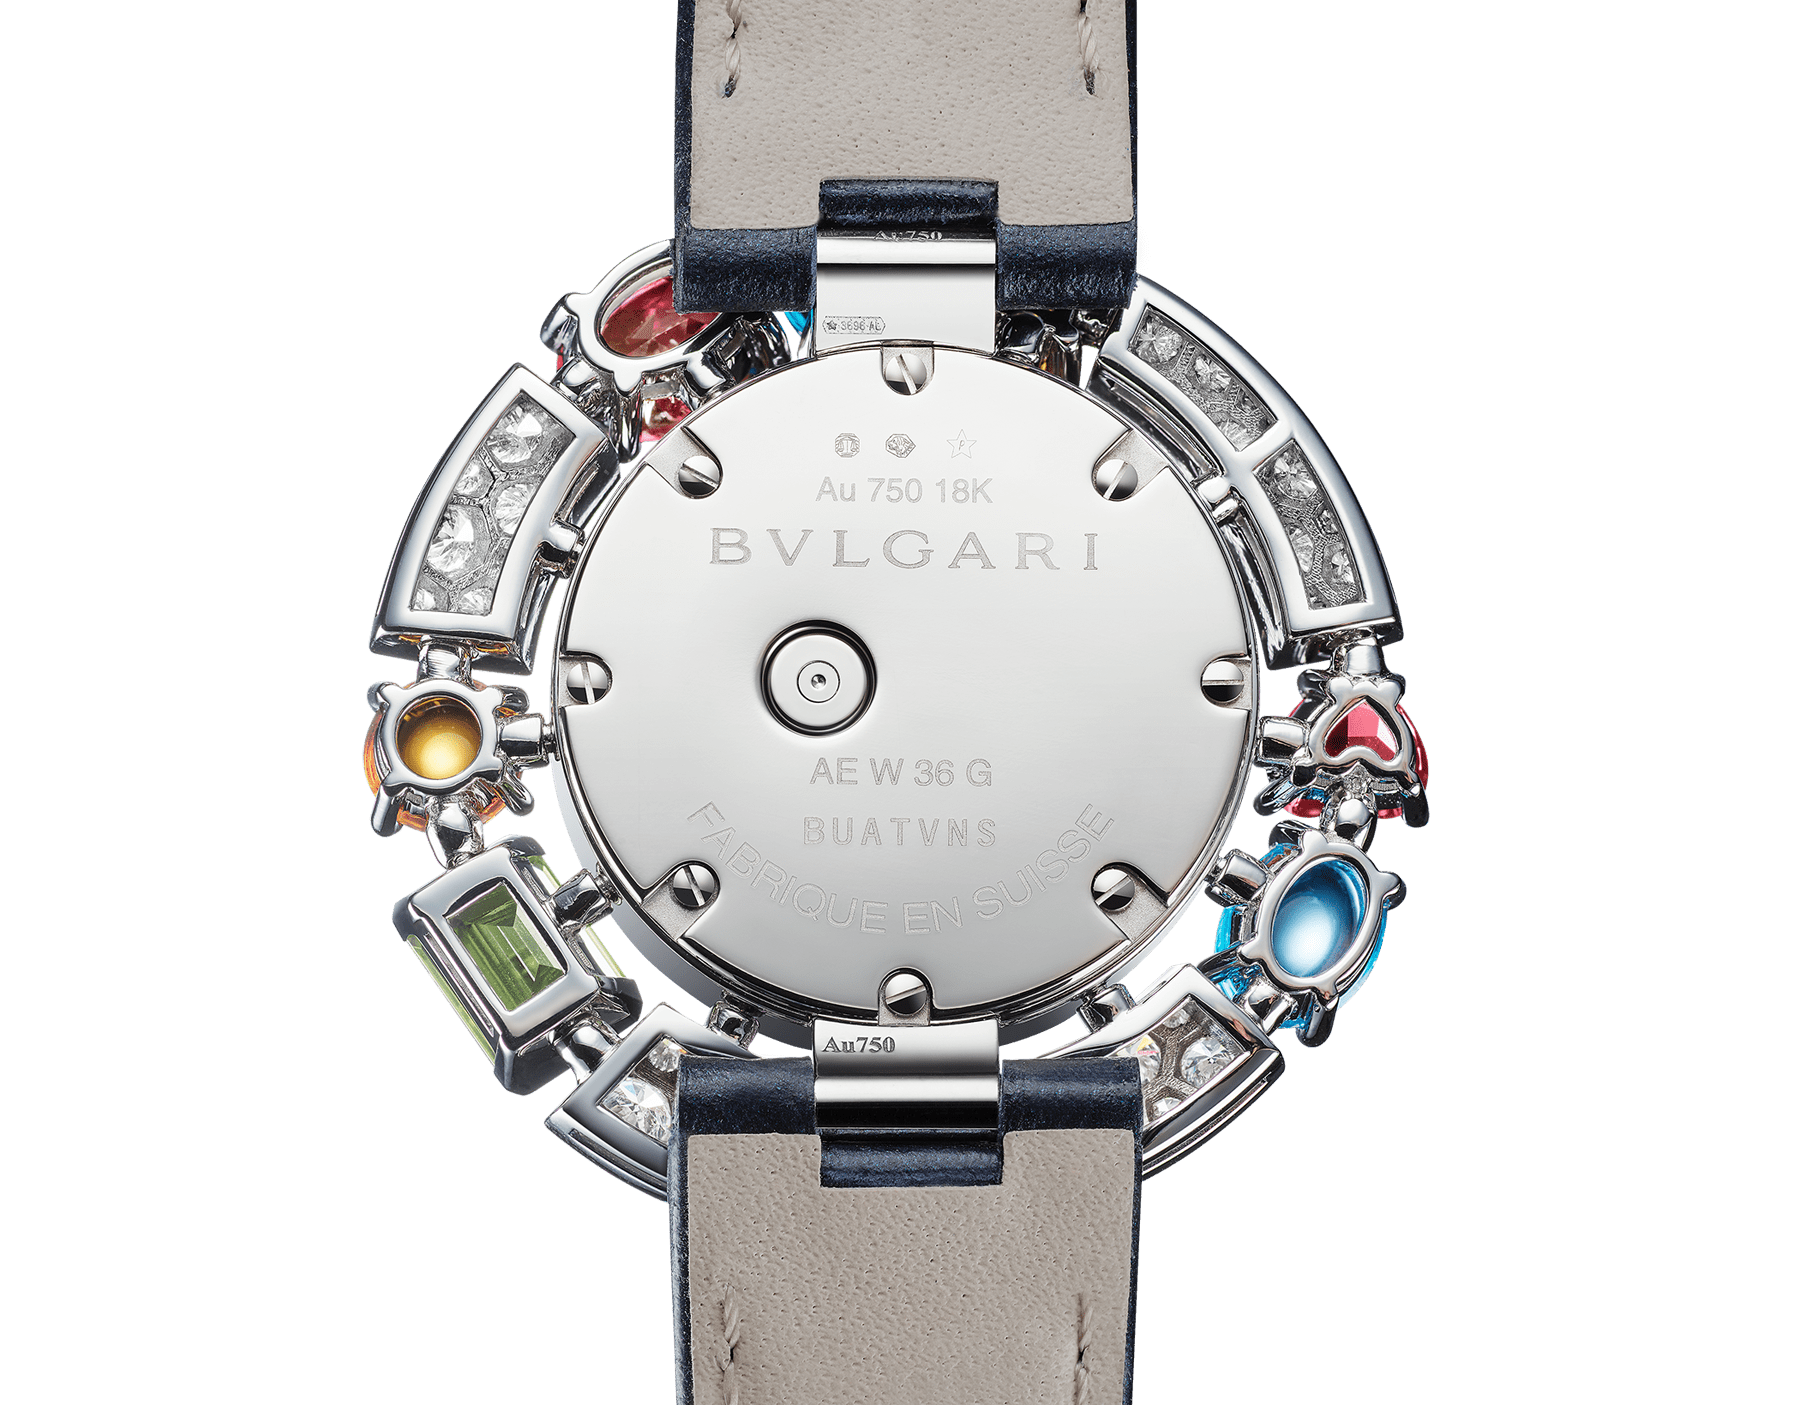 Allegra High Jewellery watch with 18 kt white gold case set with brilliant-cut diamonds, two citrines, an amethyst, a peridot, two blue topazes and two rhodolite, mother-of-pearl dial, diamond indexes and blue alligator bracelet. Water resistant up to 30 metres 103499 image 3